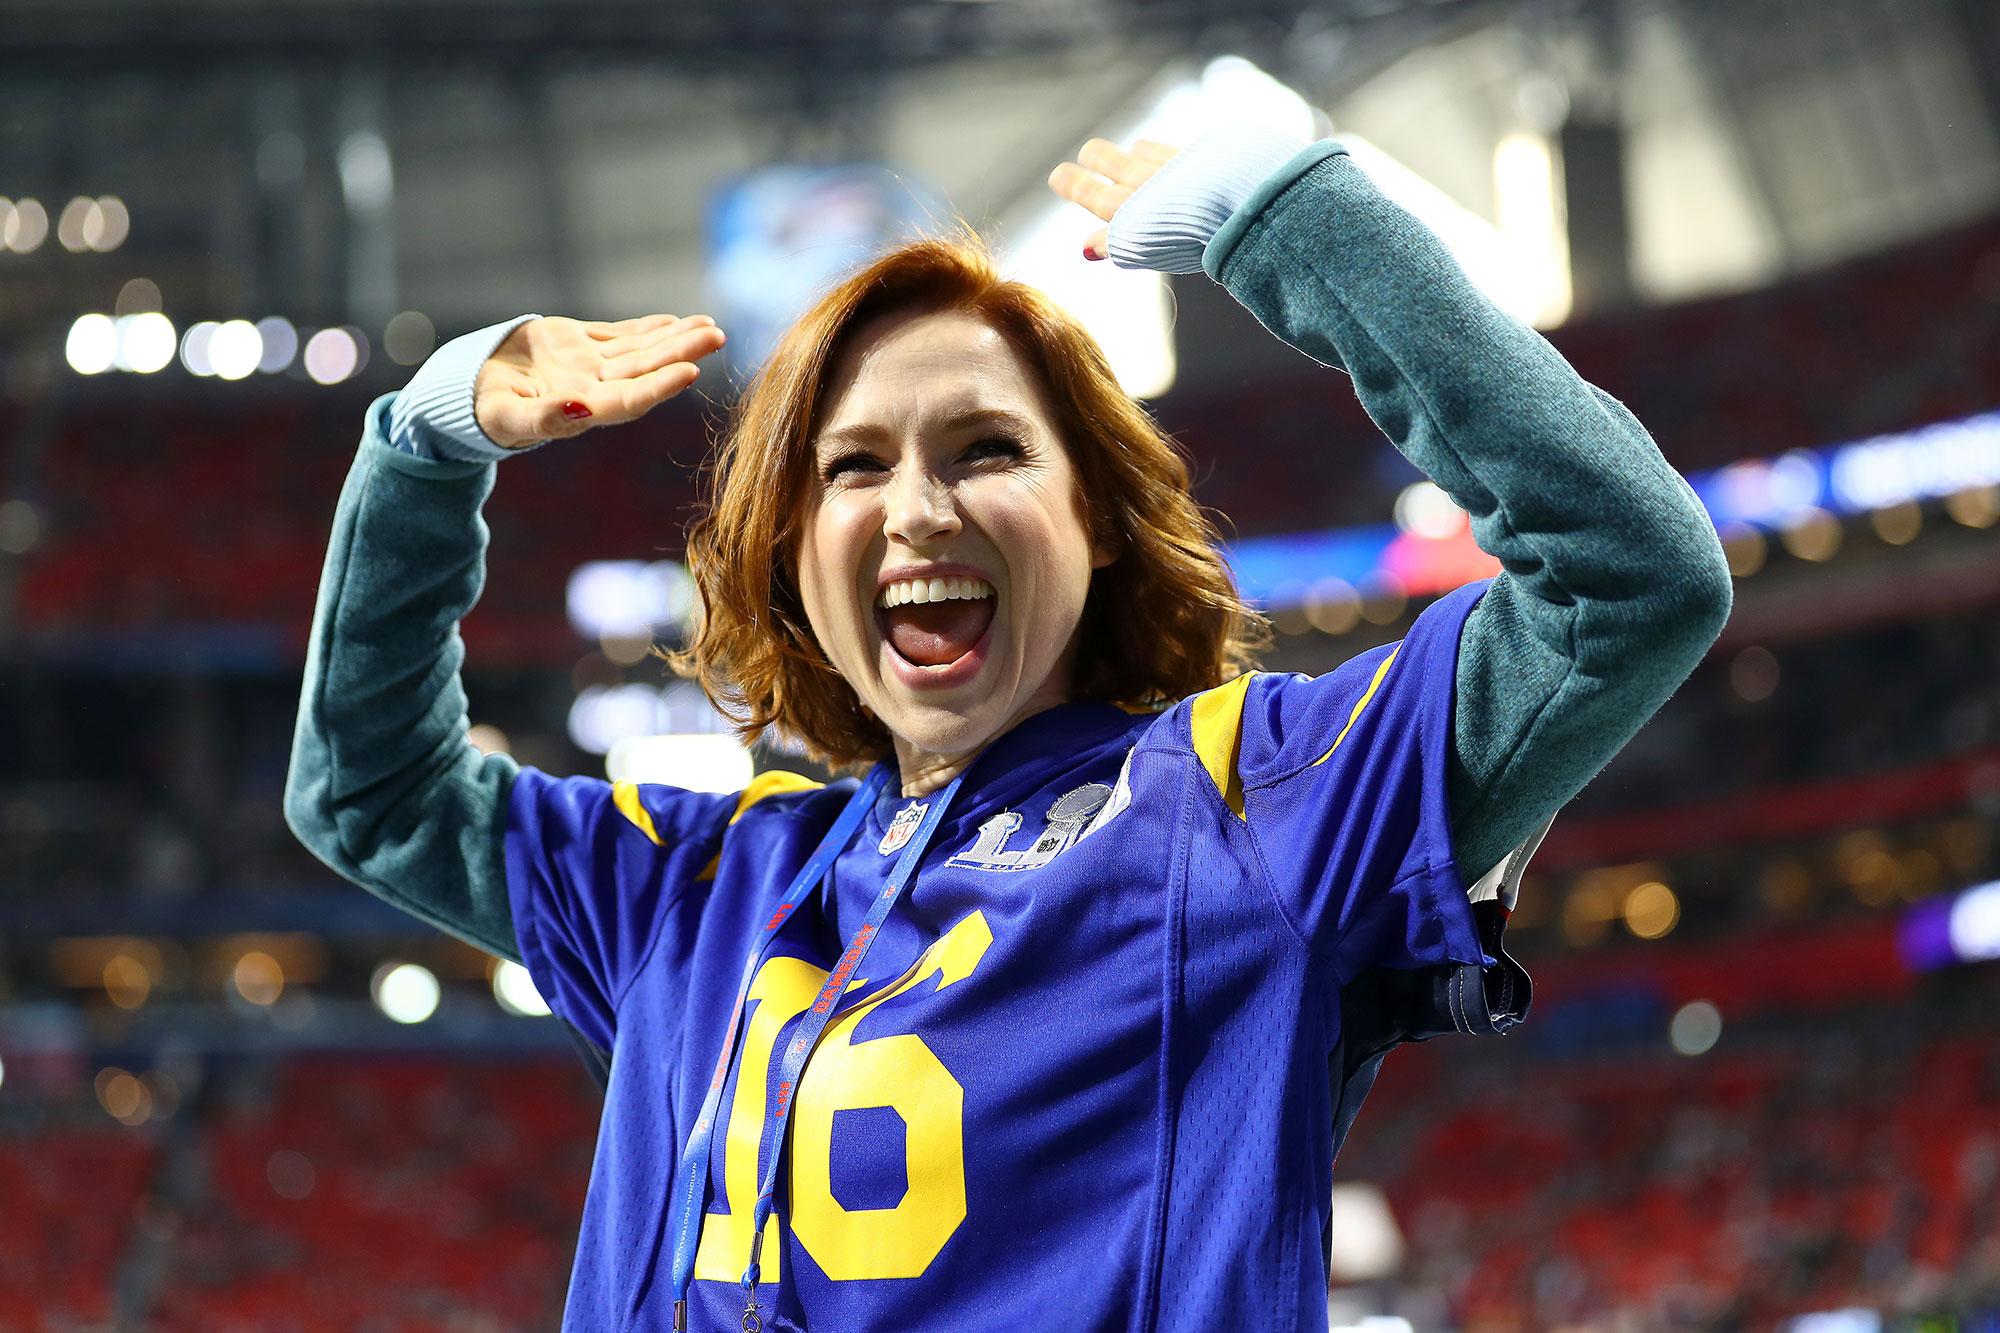 Gallery Super Bowl 53 Ellie Kemper - ATLANTA, GEORGIA – FEBRUARY 03: Actress Ellie Kemper attends Super Bowl LIII at Mercedes-Benz Stadium between the Los Angeles Rams and the New England Patriots on February 03, 2019 in Atlanta, Georgia. (Photo by Maddie Meyer/Getty Images)